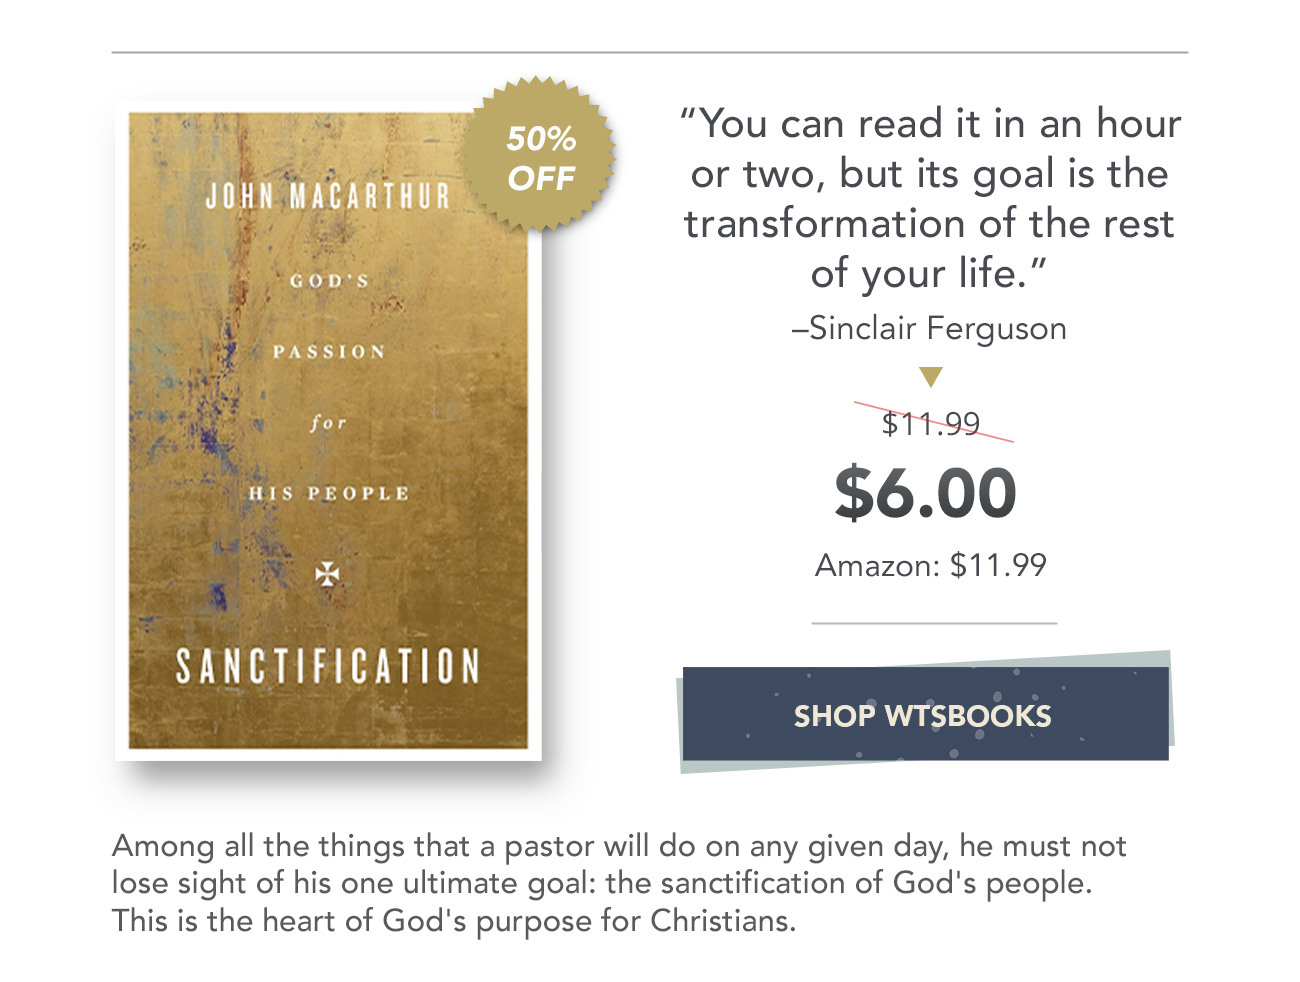 Sanctification, John MacArthur